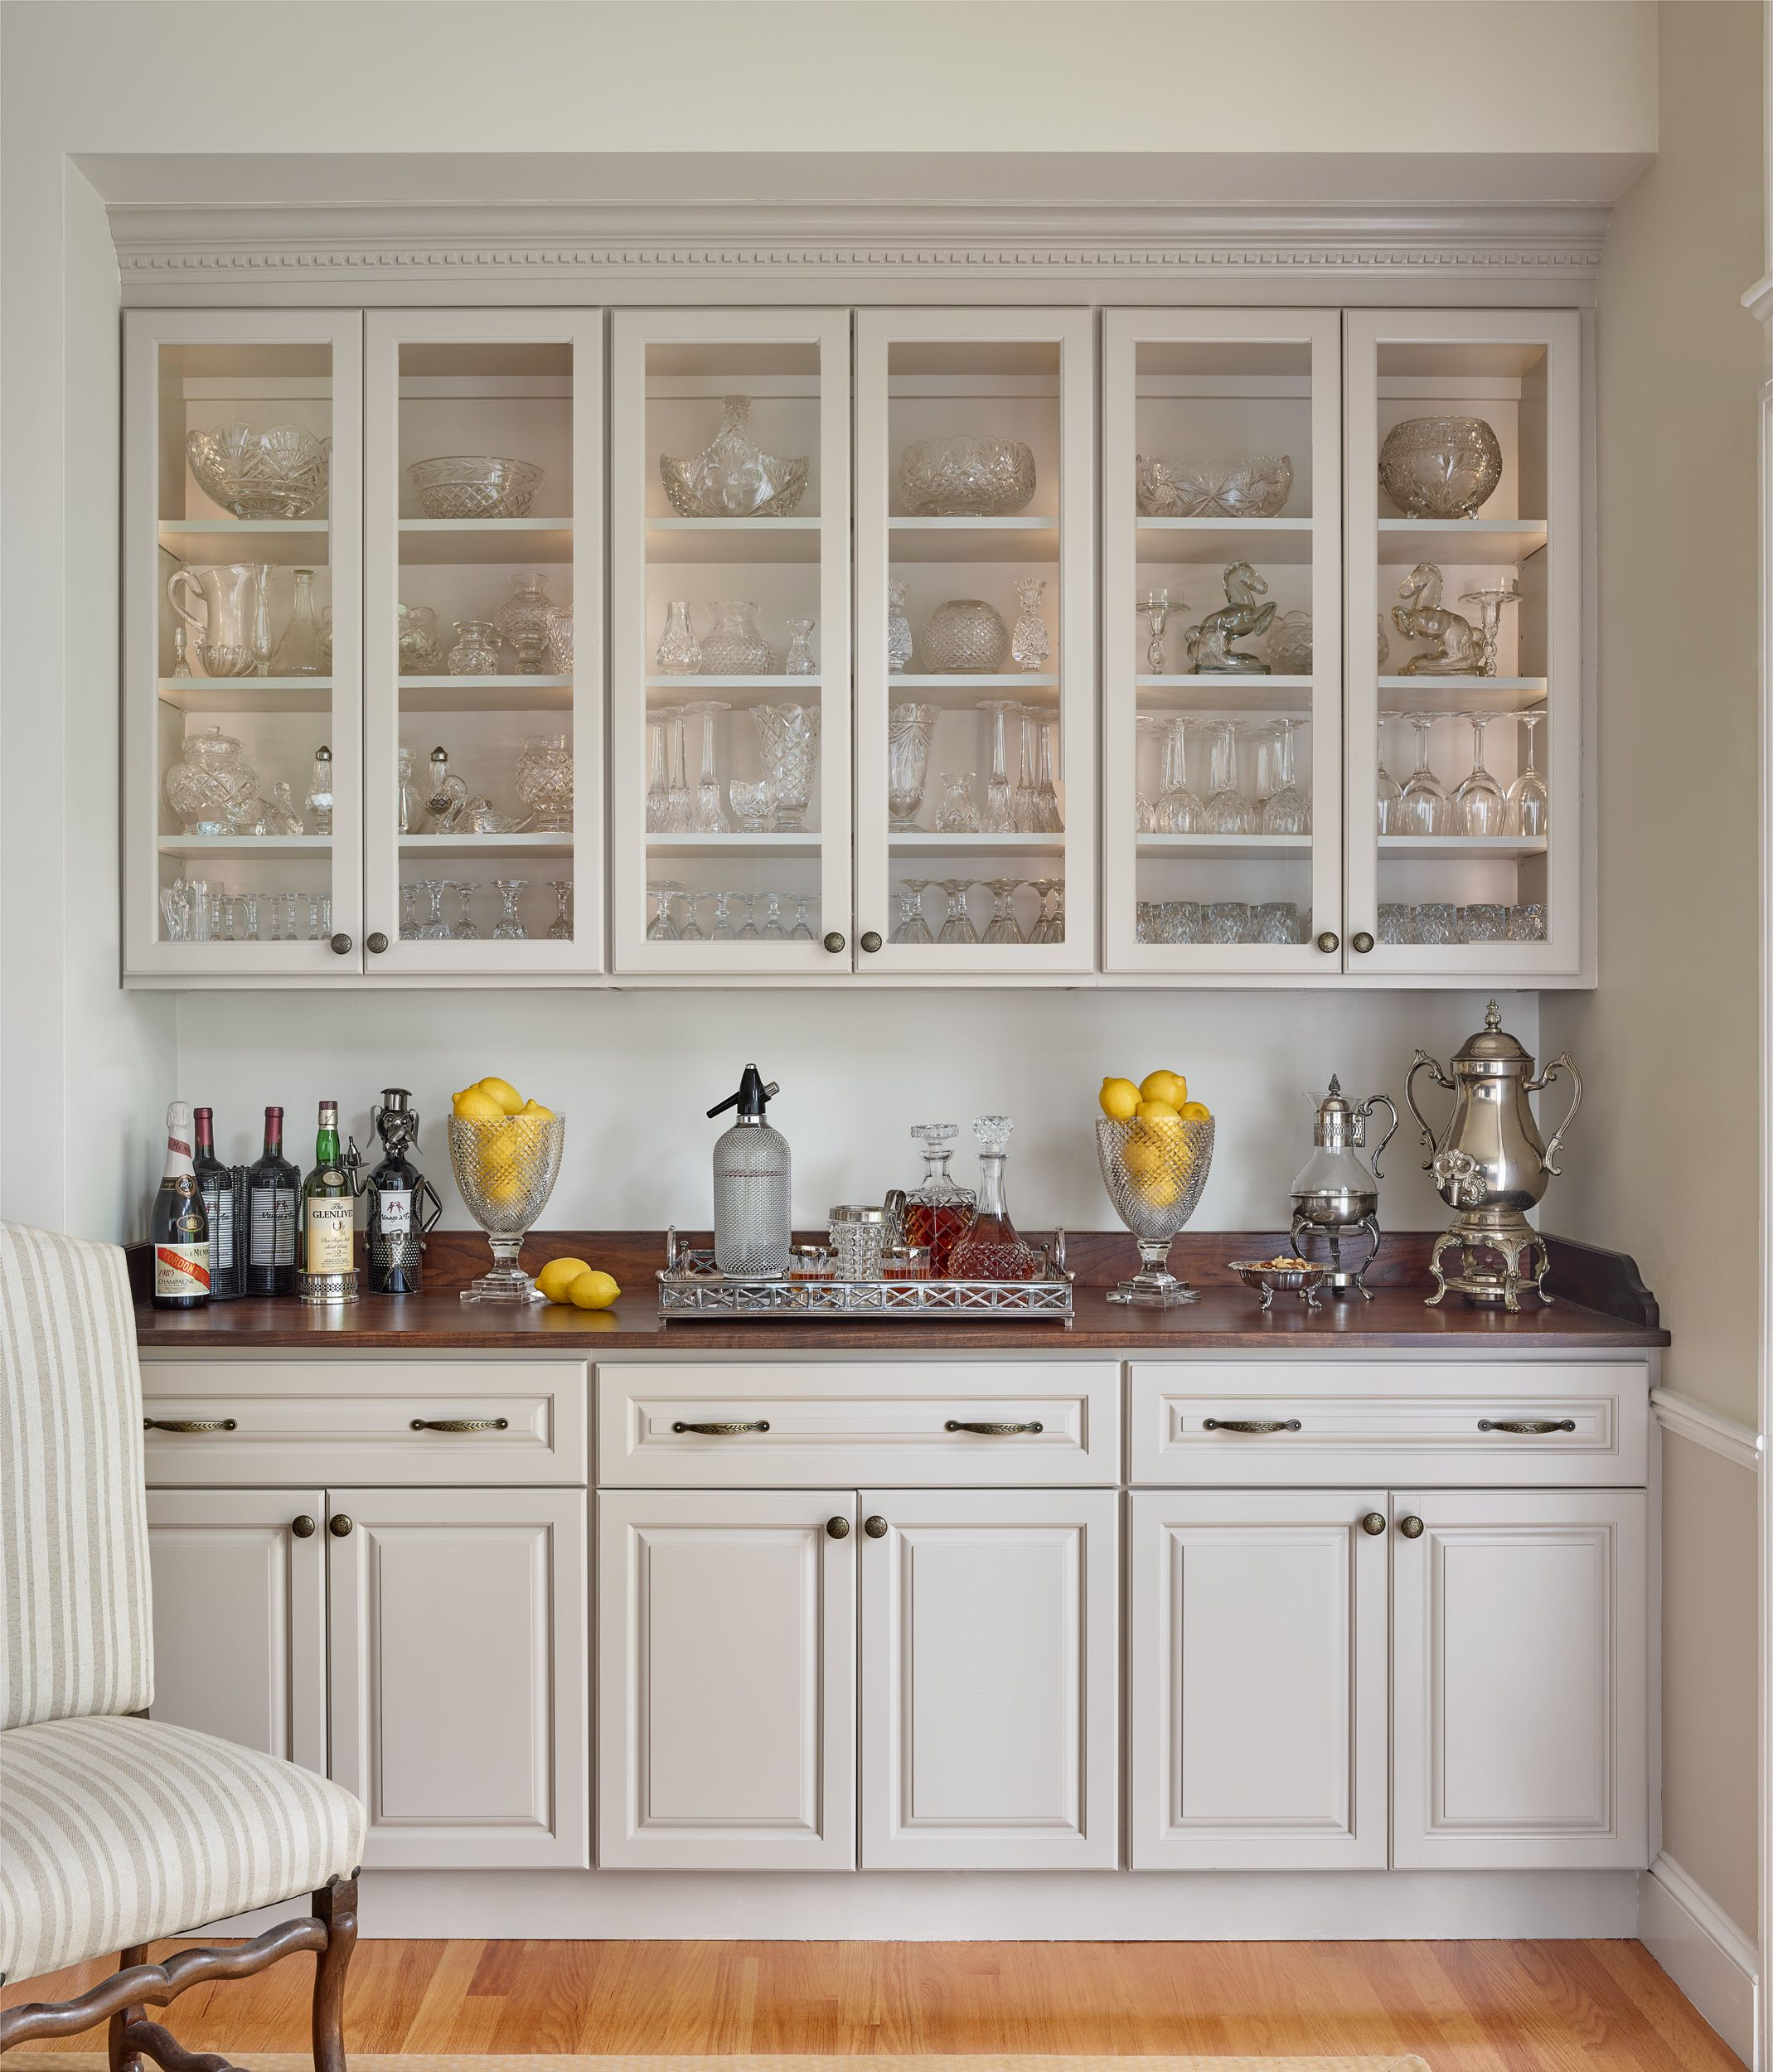 Dining Room Built In Cabinet For Storage Display And Serving Dining Room Dresser Modern Kitchen Cabinets Built In Buffet